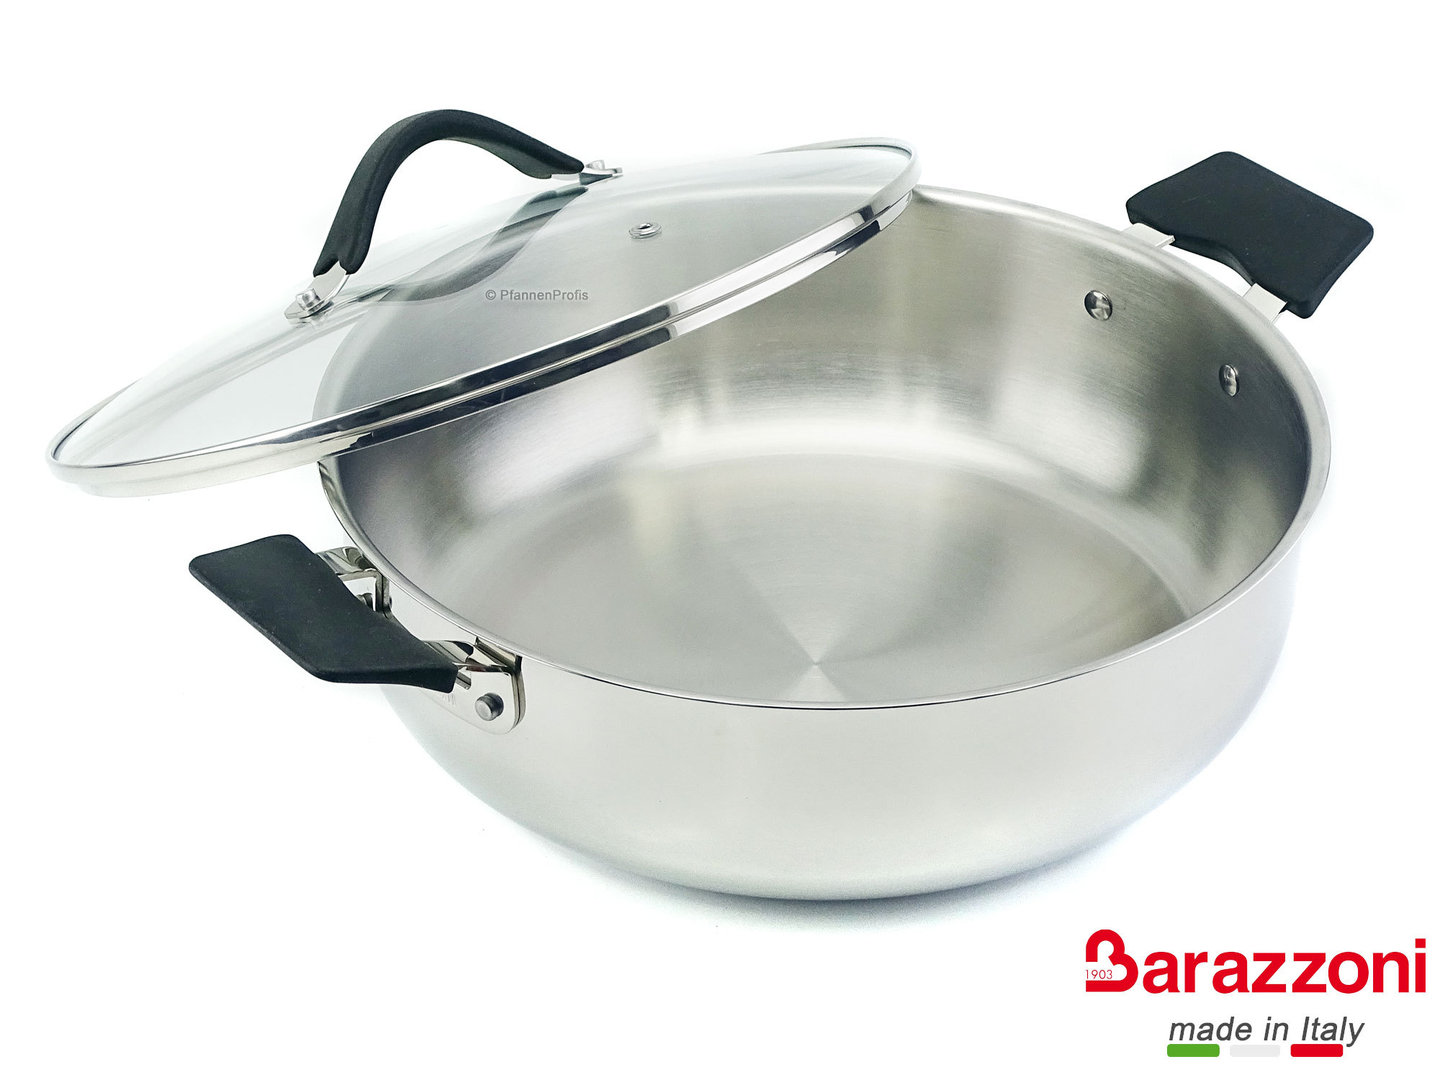 BARAZZONI shallow casserole  33-CARATI INOX stainless steel 28 cm with silicone handles 4.5 L